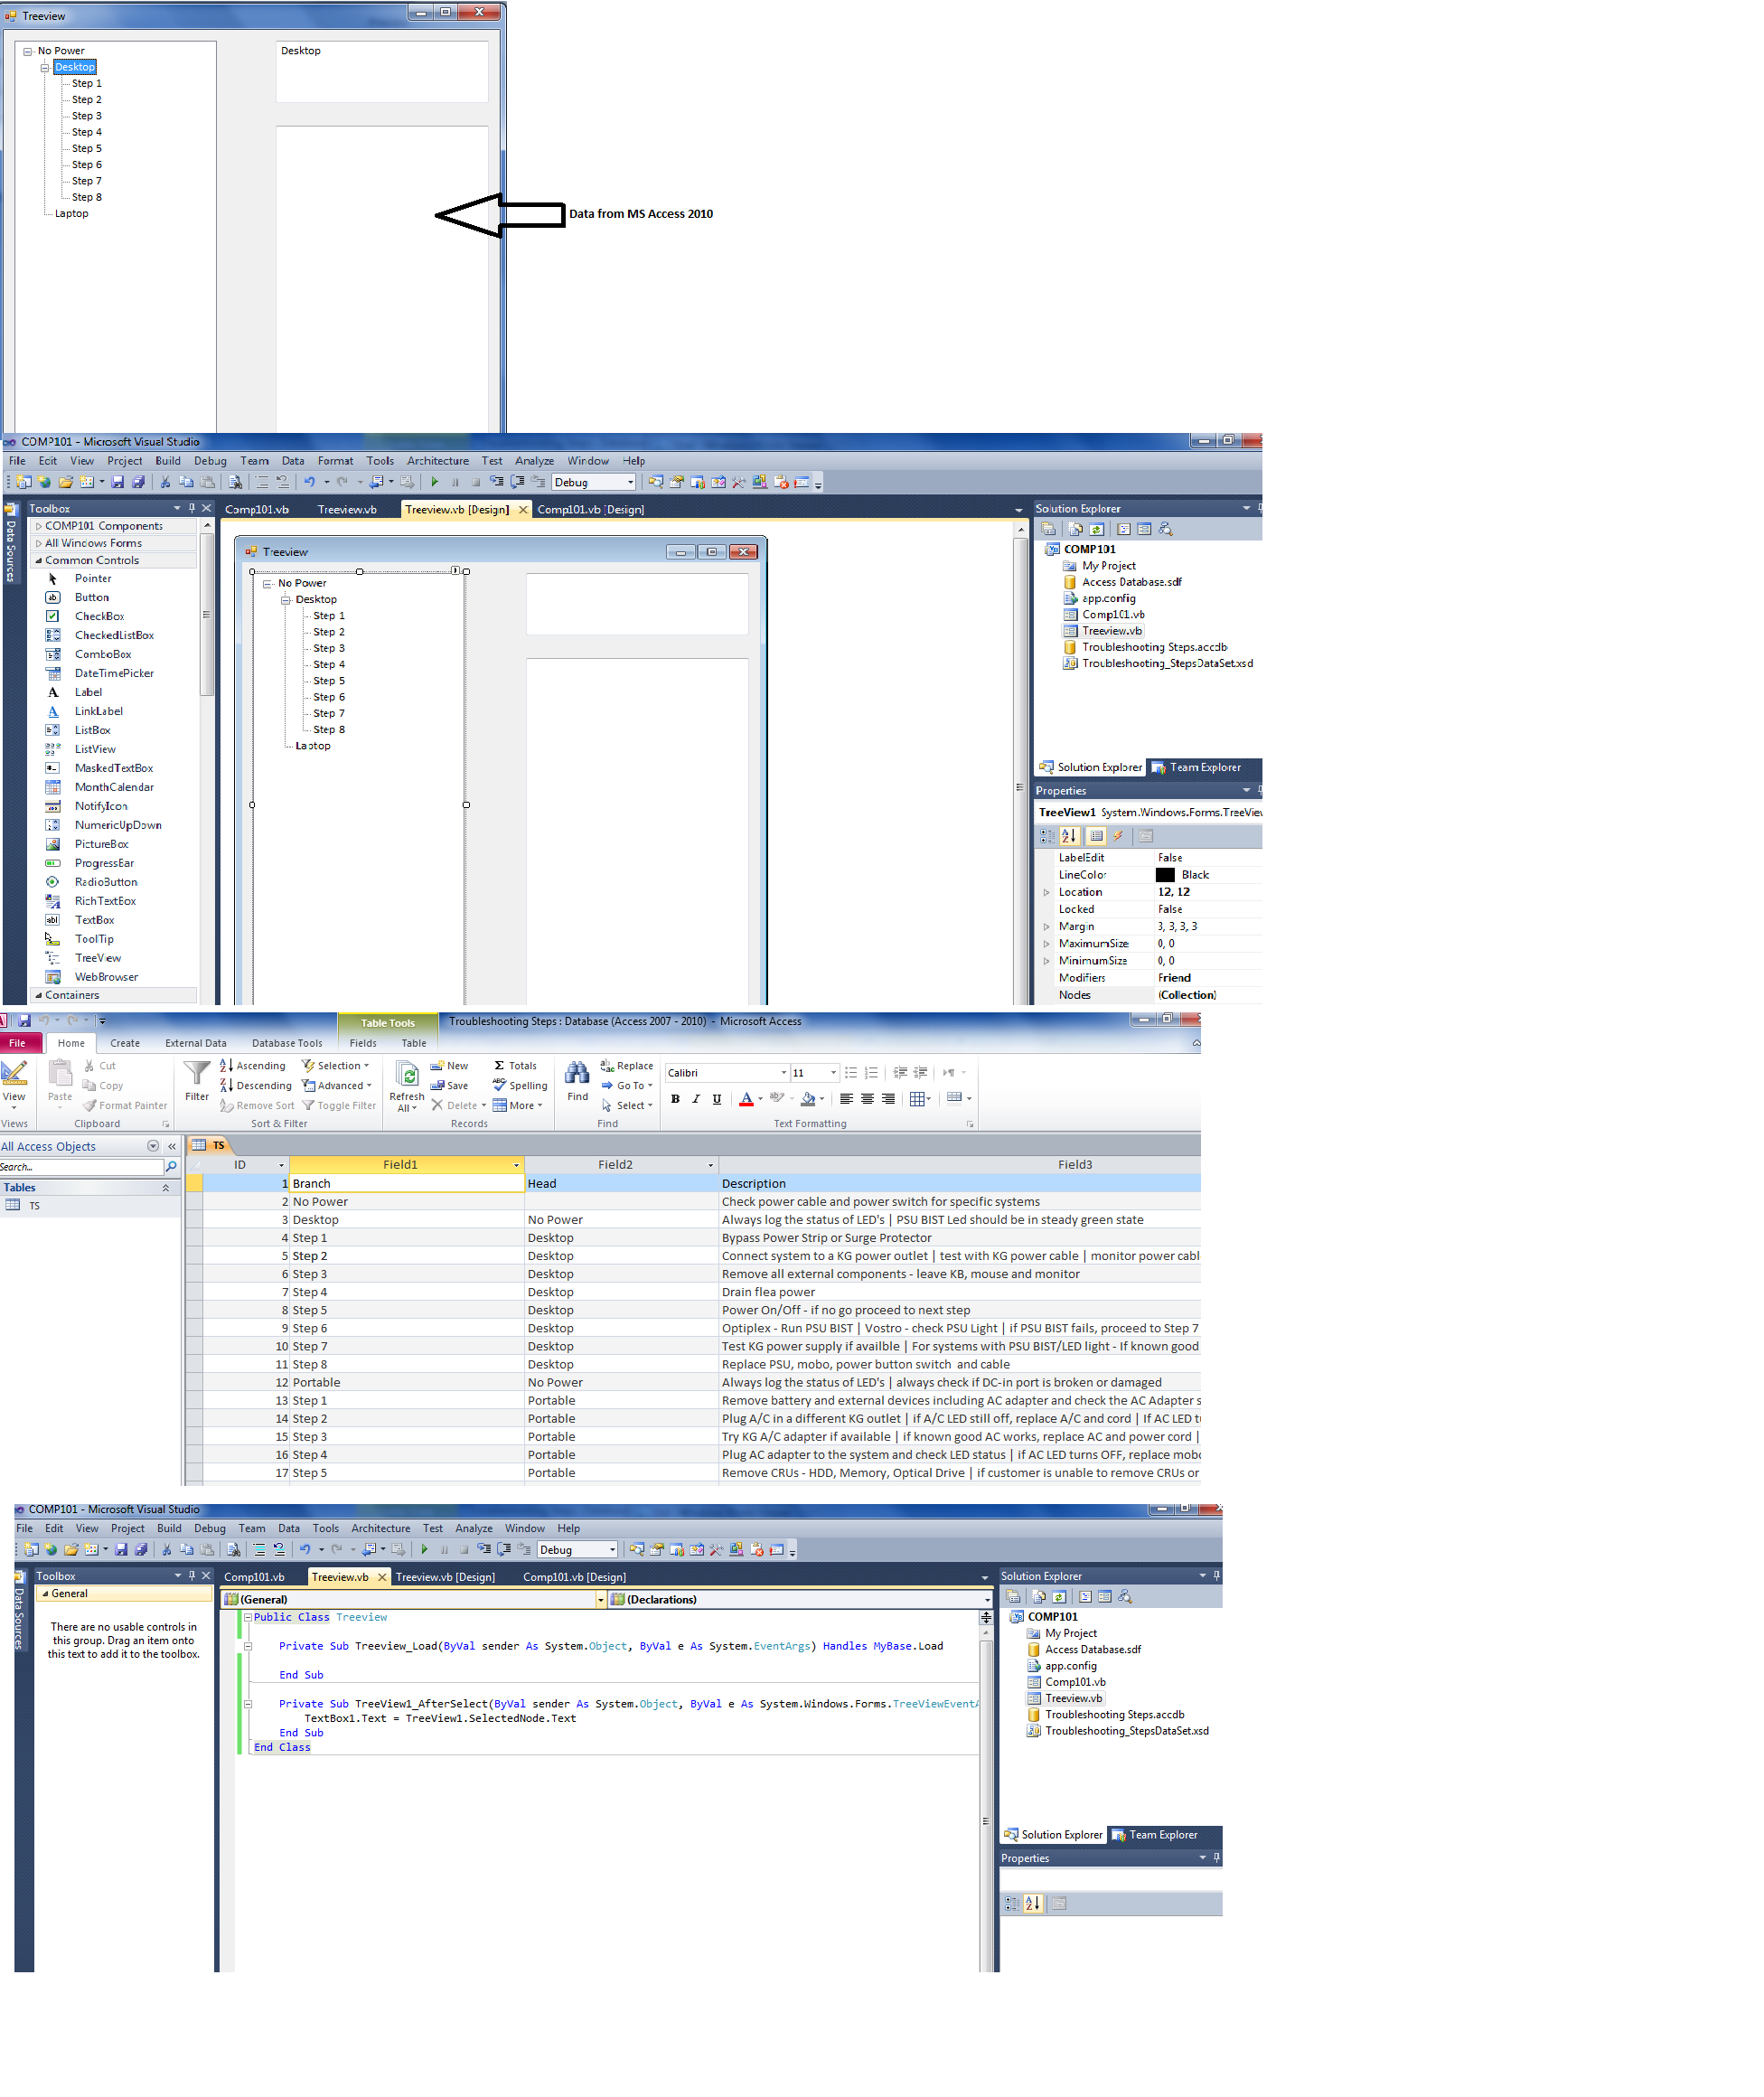 Populating data from MS Access 2010 to VB net 2010 treeview